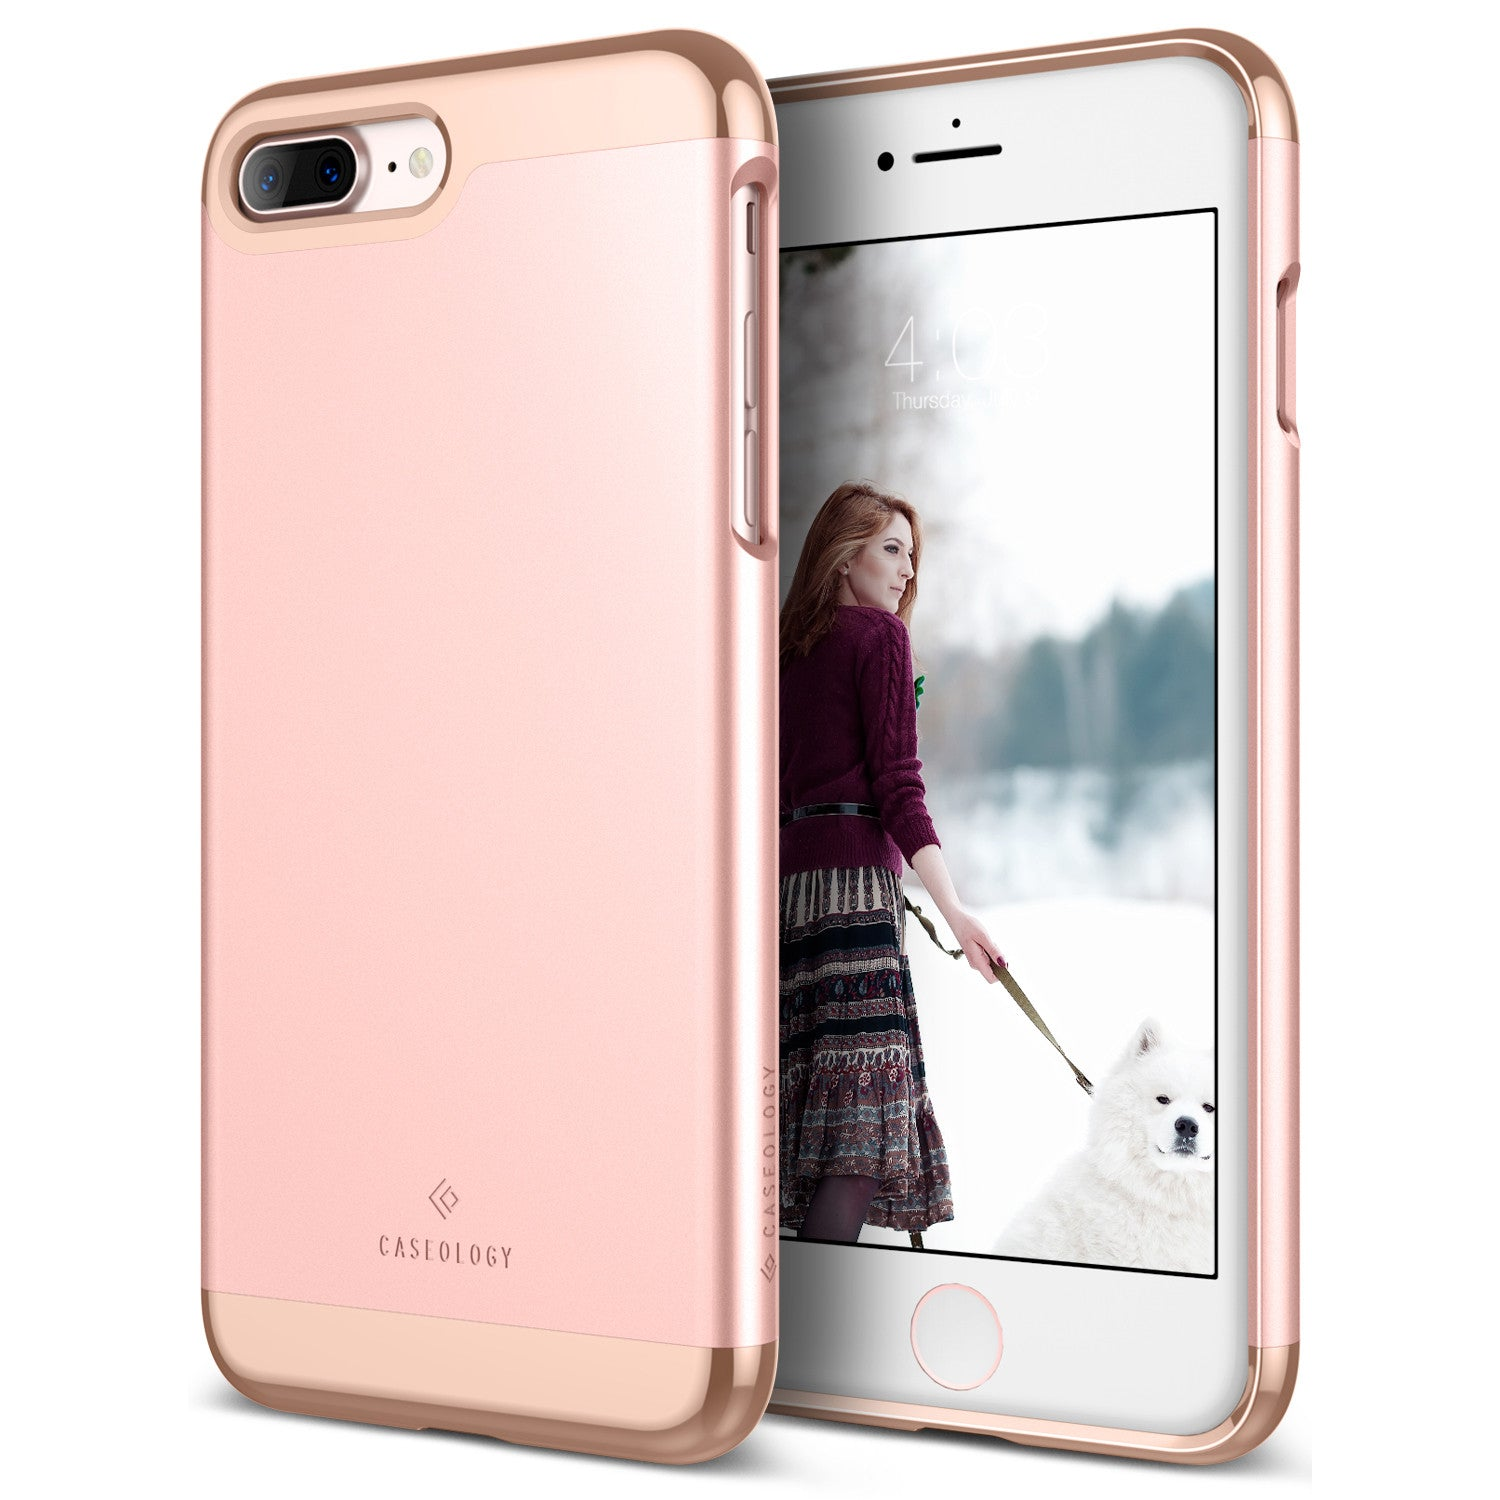 iPhone 7 Plus Case Savoy Promo